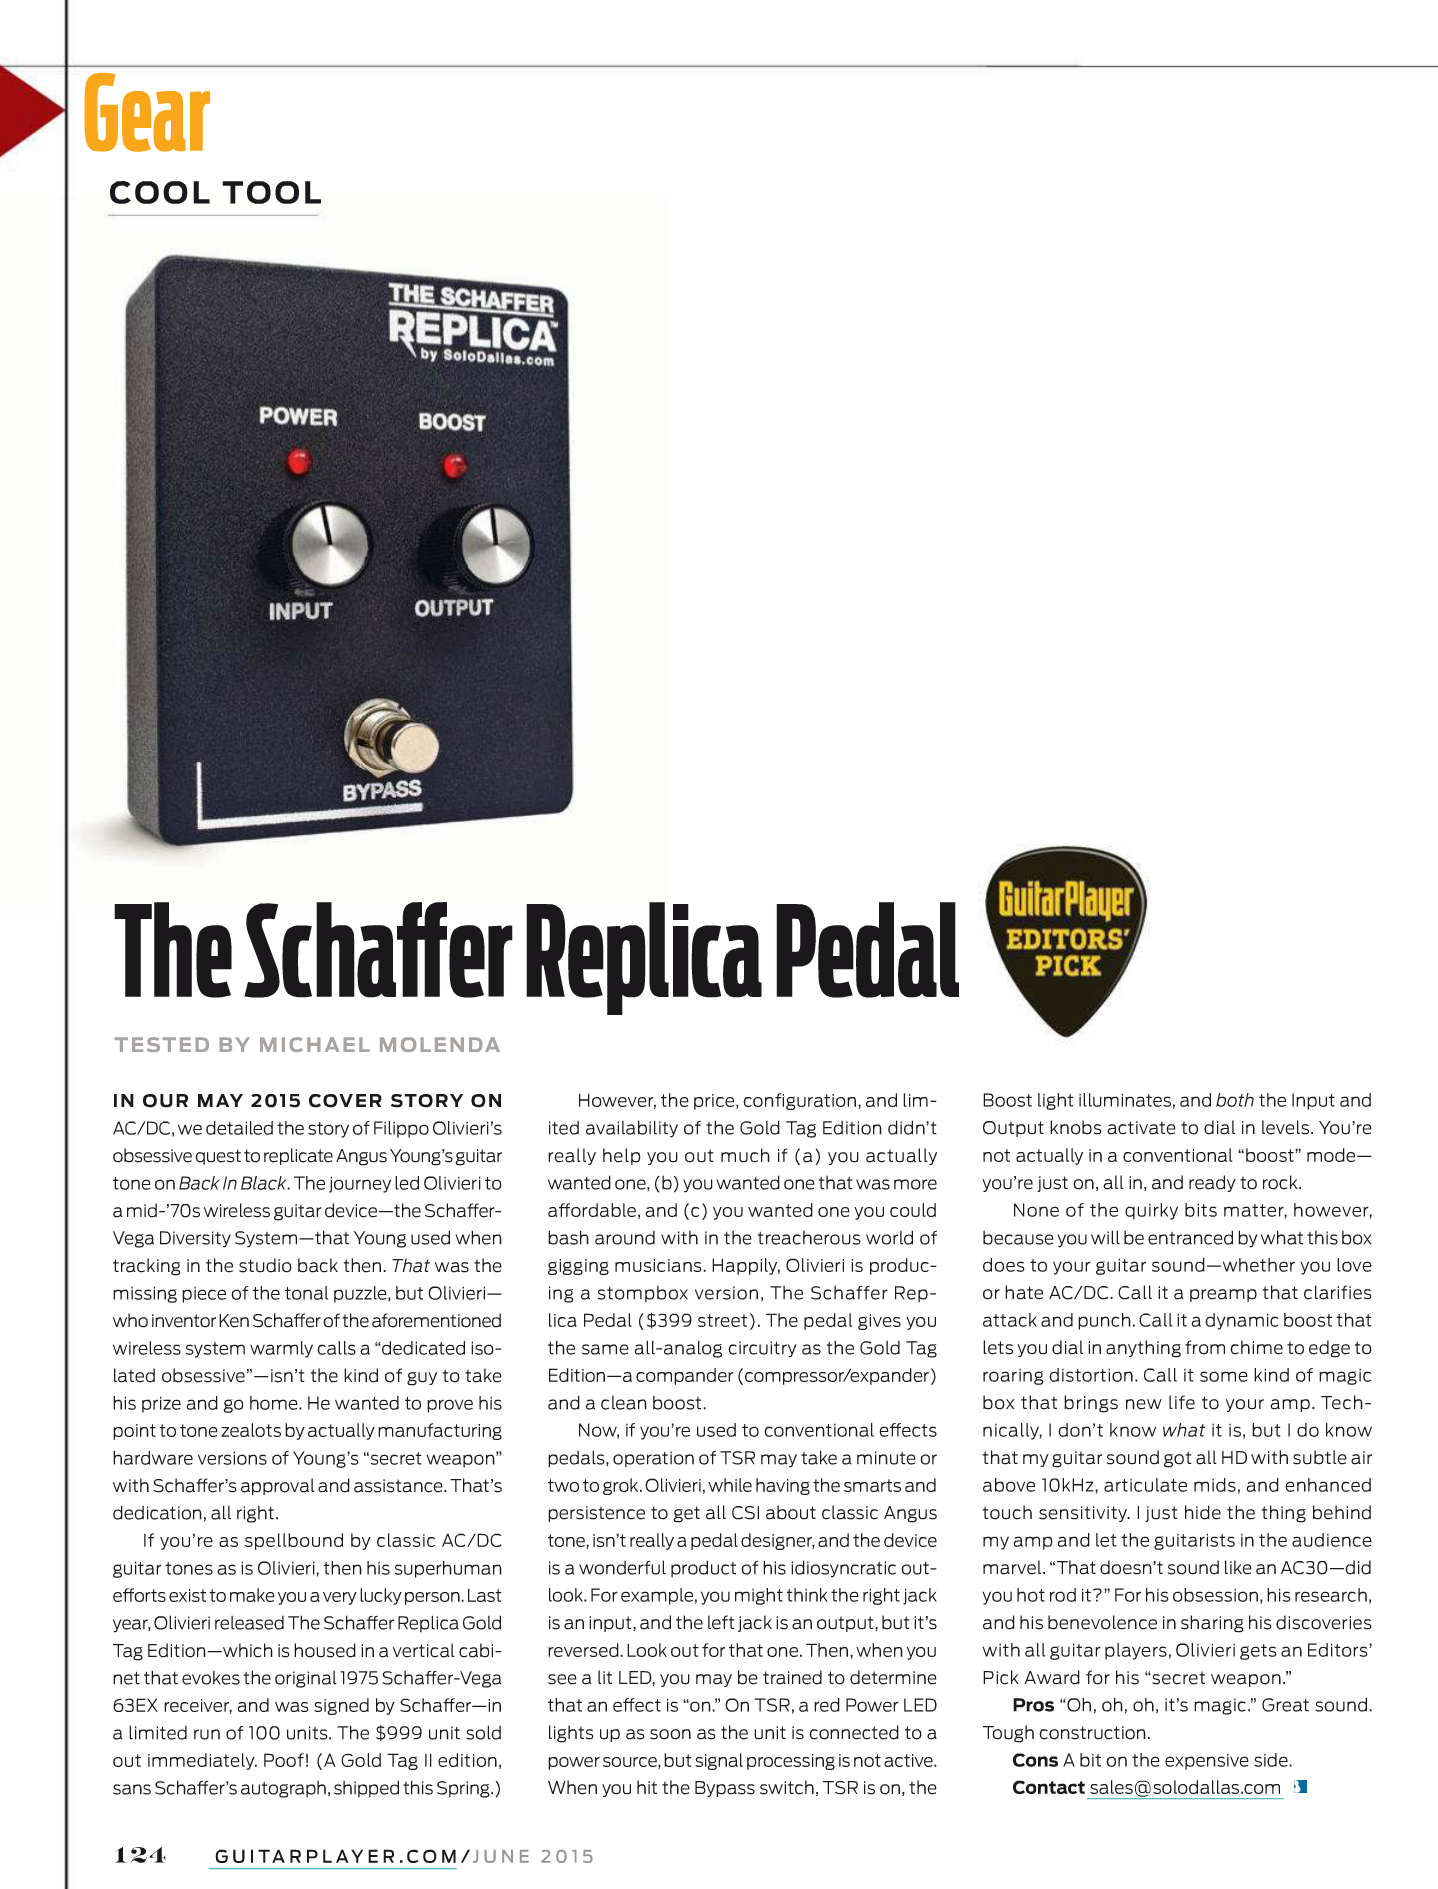 Guitar Player Editors' Pick 2015 Schaffer Replica